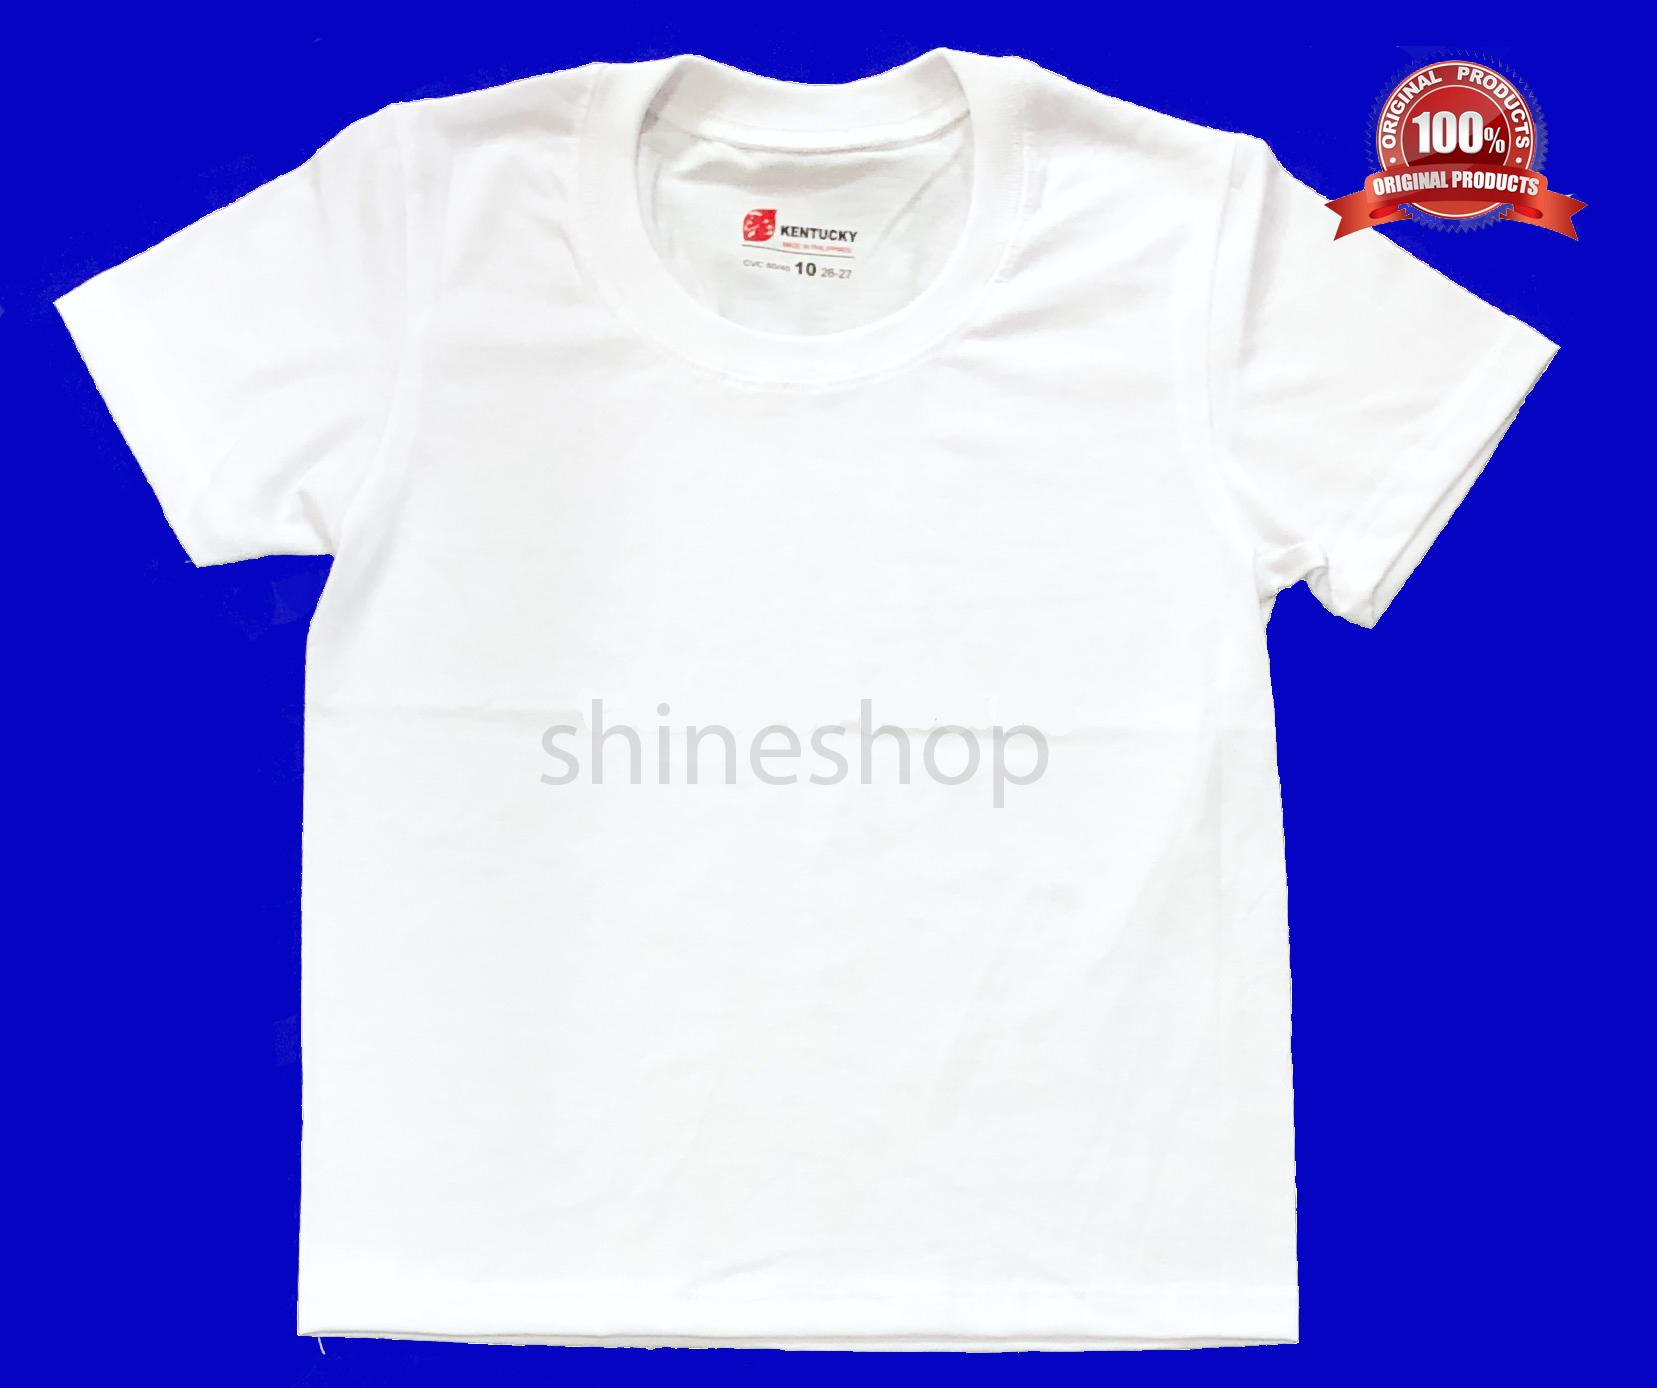 Kentucky White Shirt For Kids (set Of 2) By Shineshop999.